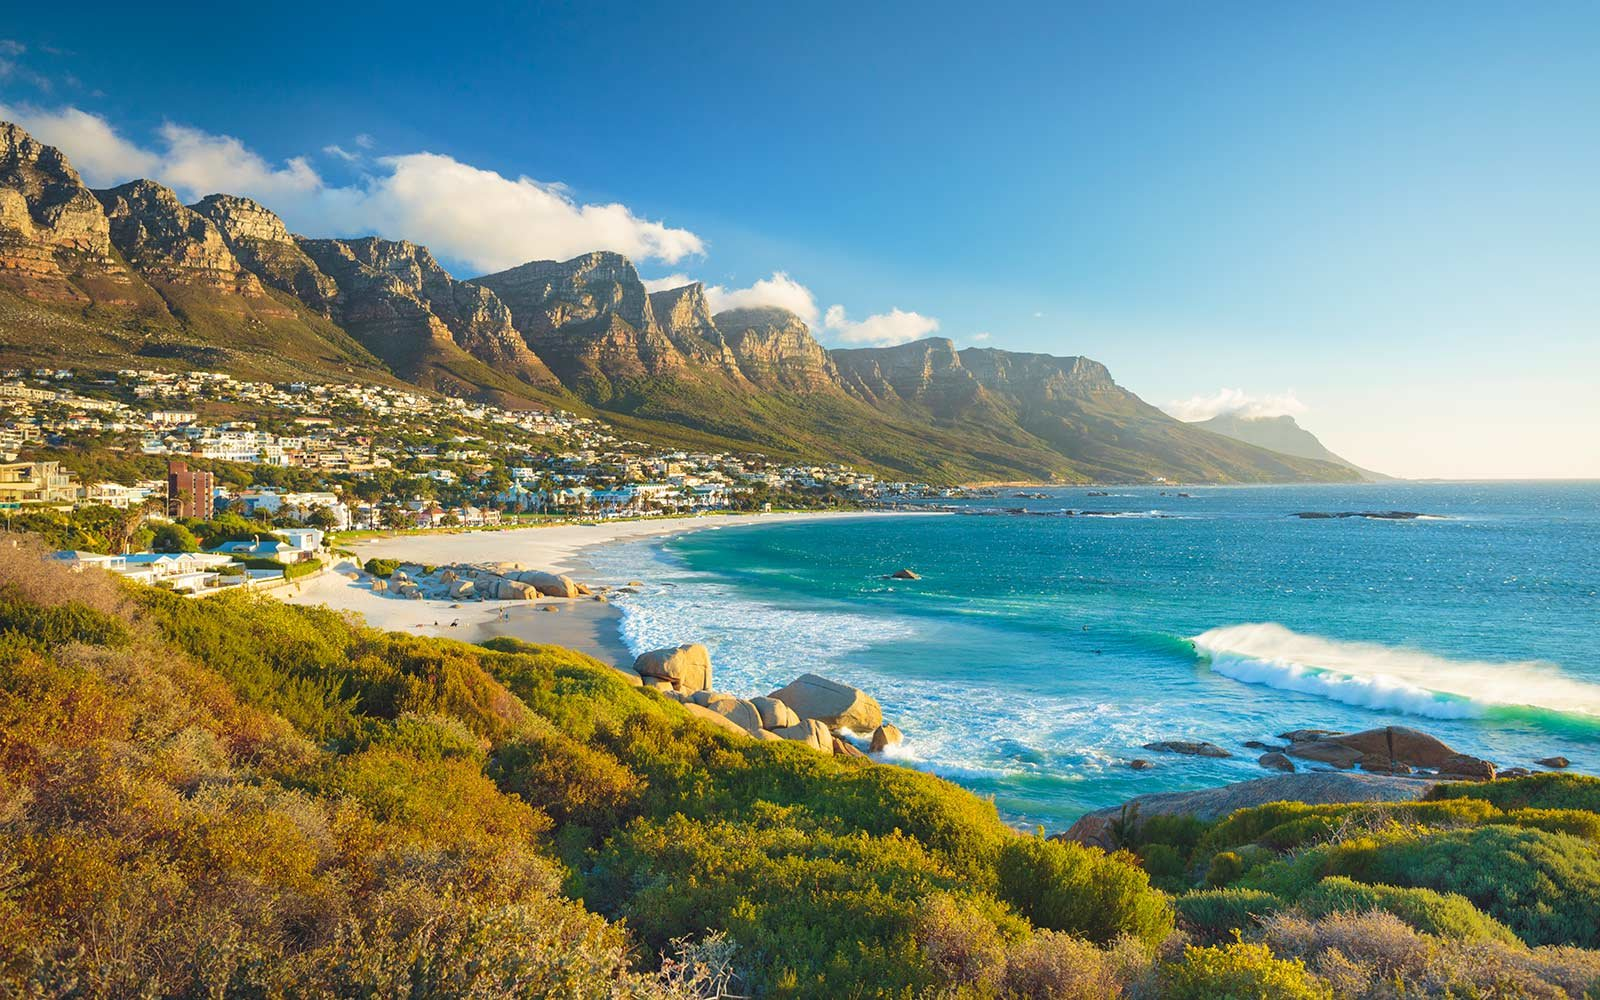 cape-town-south-africa-CAPETOWNDECOR0217.jpg